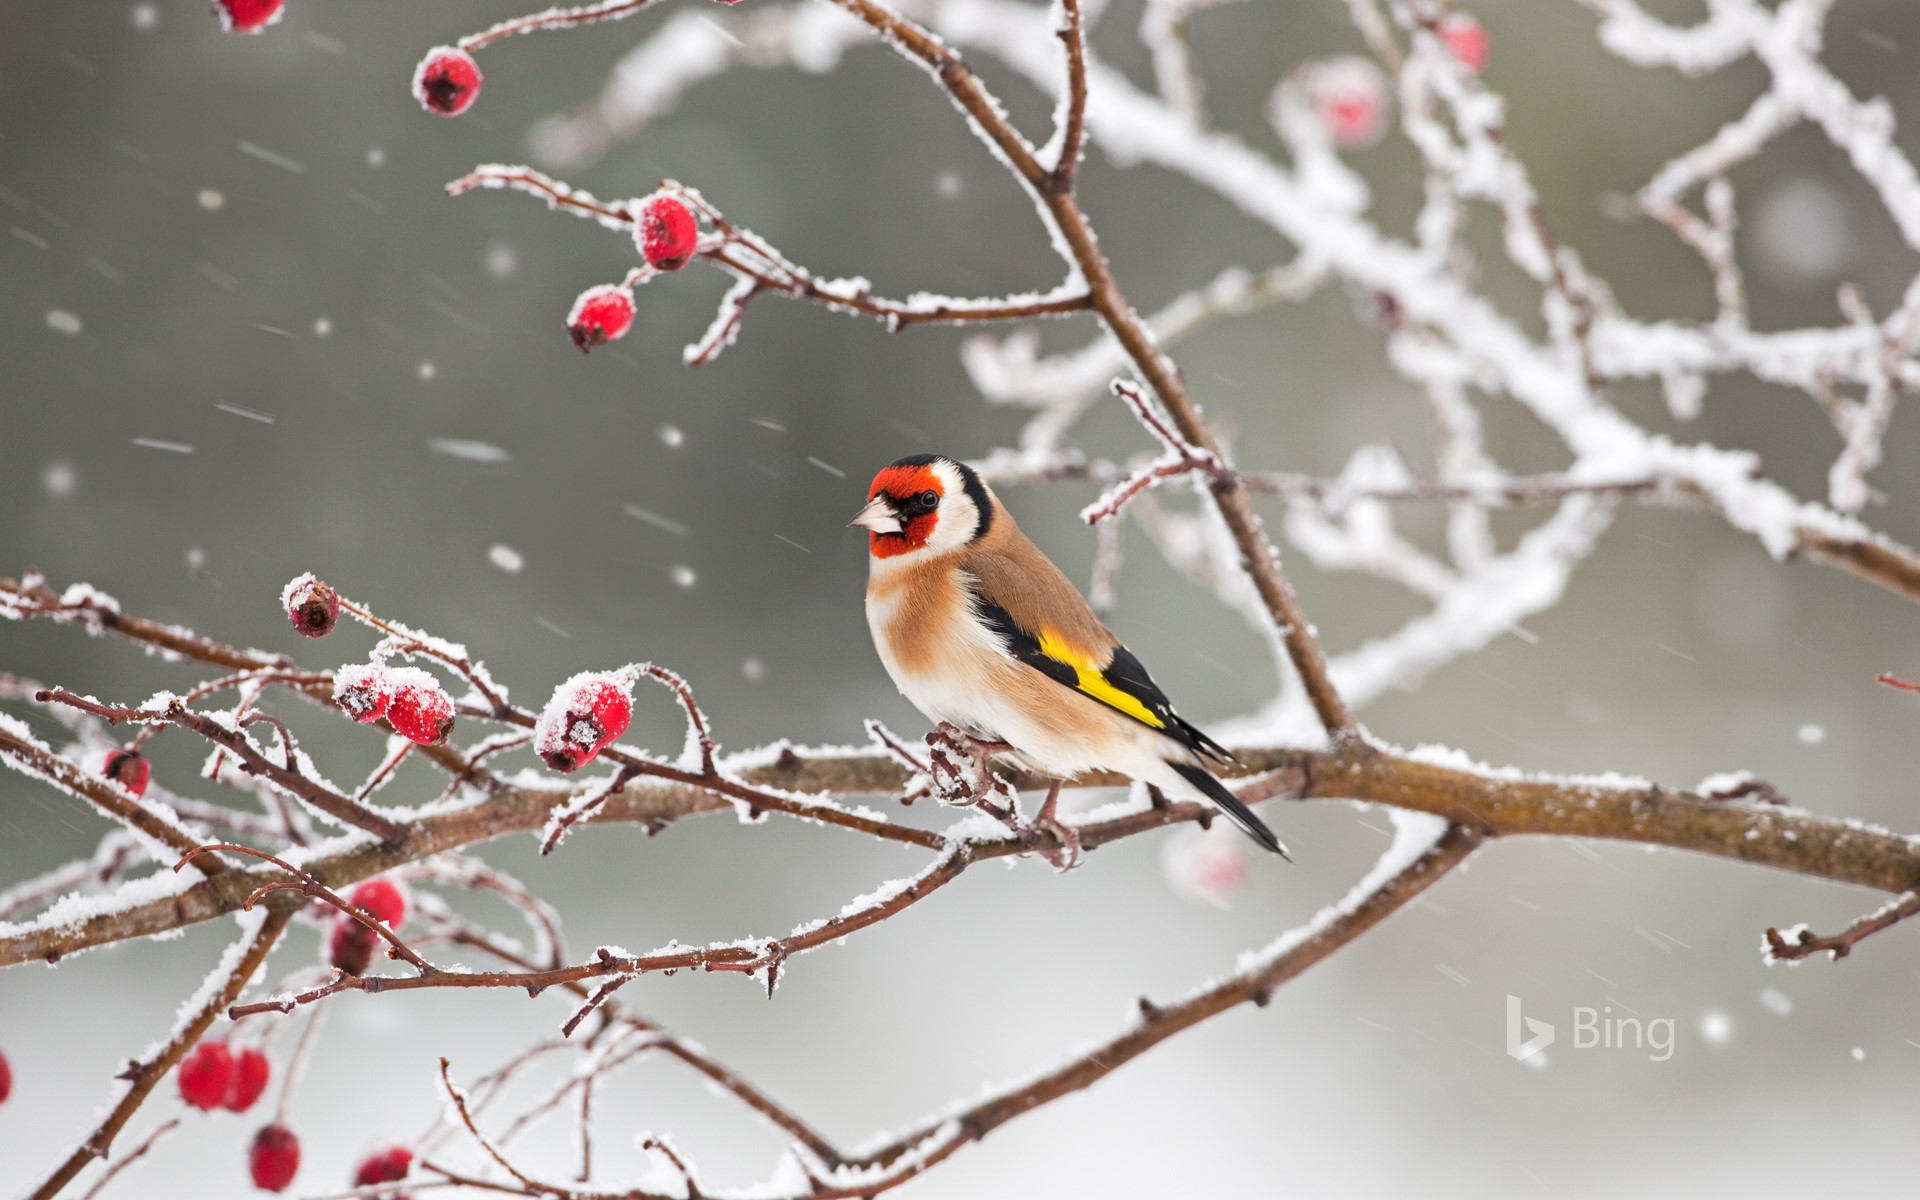 A European goldfinch perched among rosehips in snow